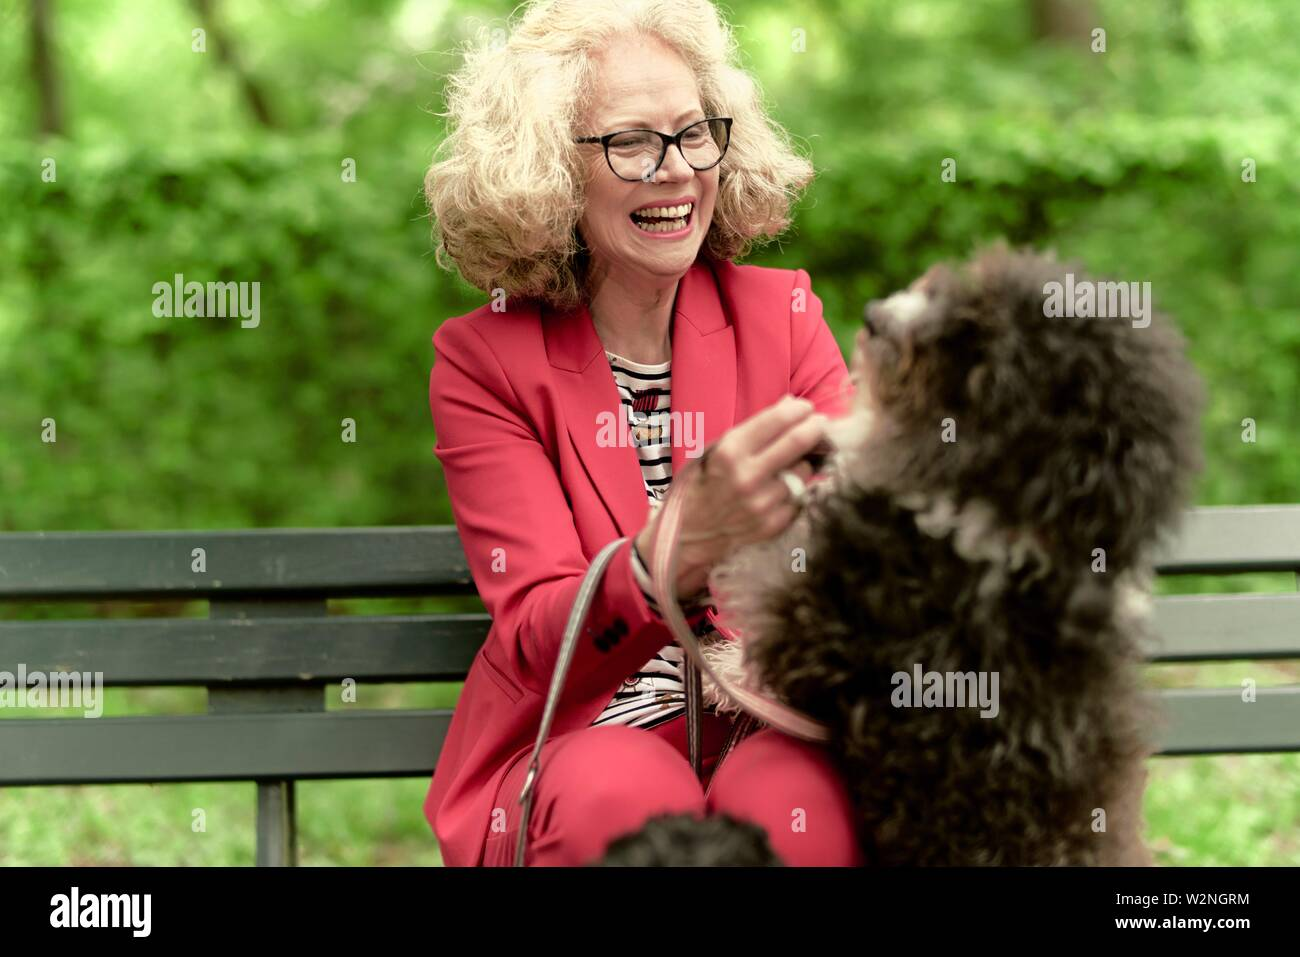 senior woman (67 years old) with dog in park, in Nymphenburg, Munich, Germany. Stock Photo